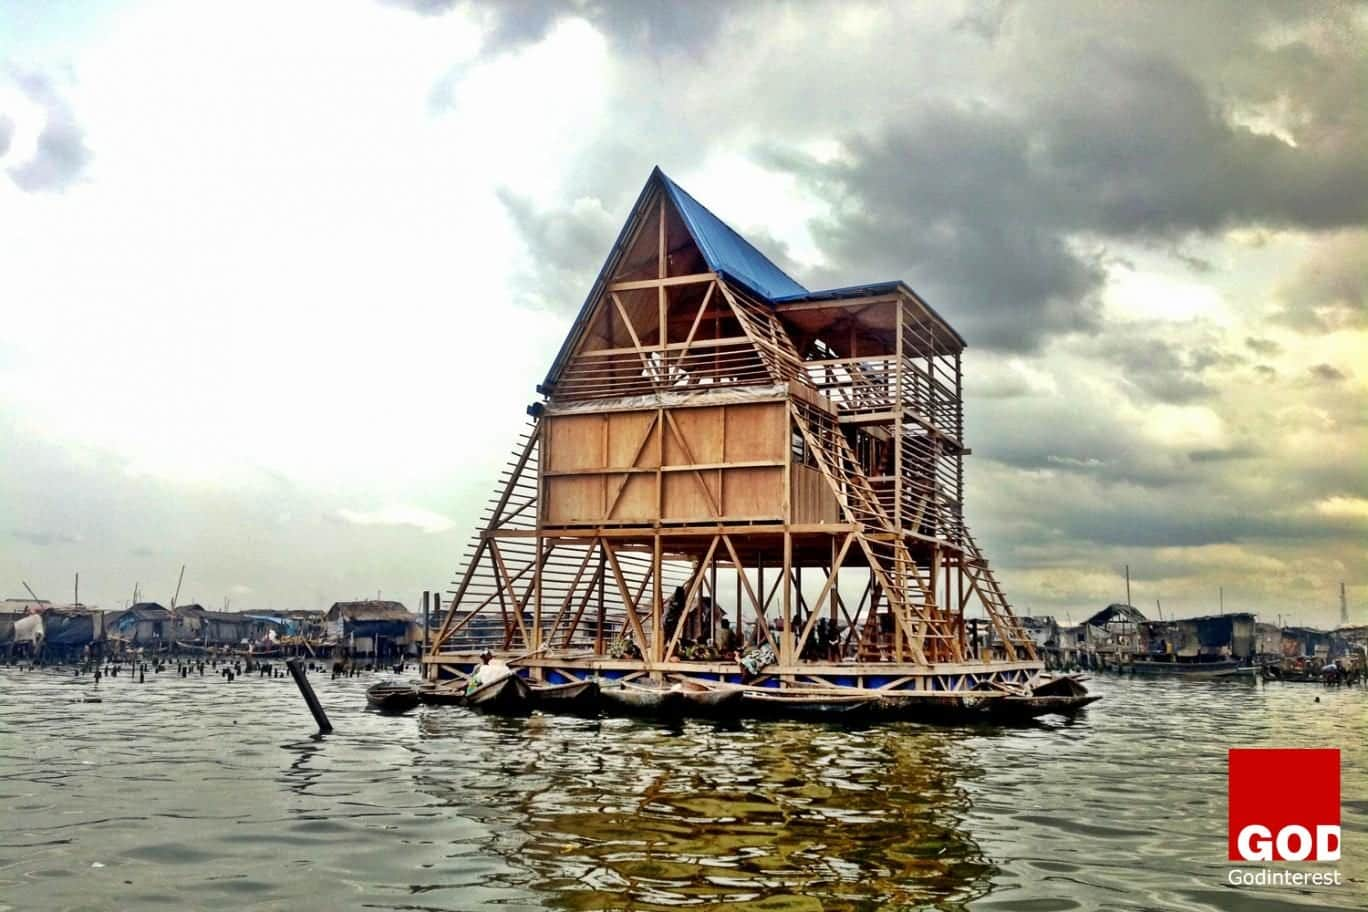 'Creation From Catastrophe' a New exhibition looks at how architects are doing more to prepare us for disaster – but is it enough?, Godinterest Christian Magazine